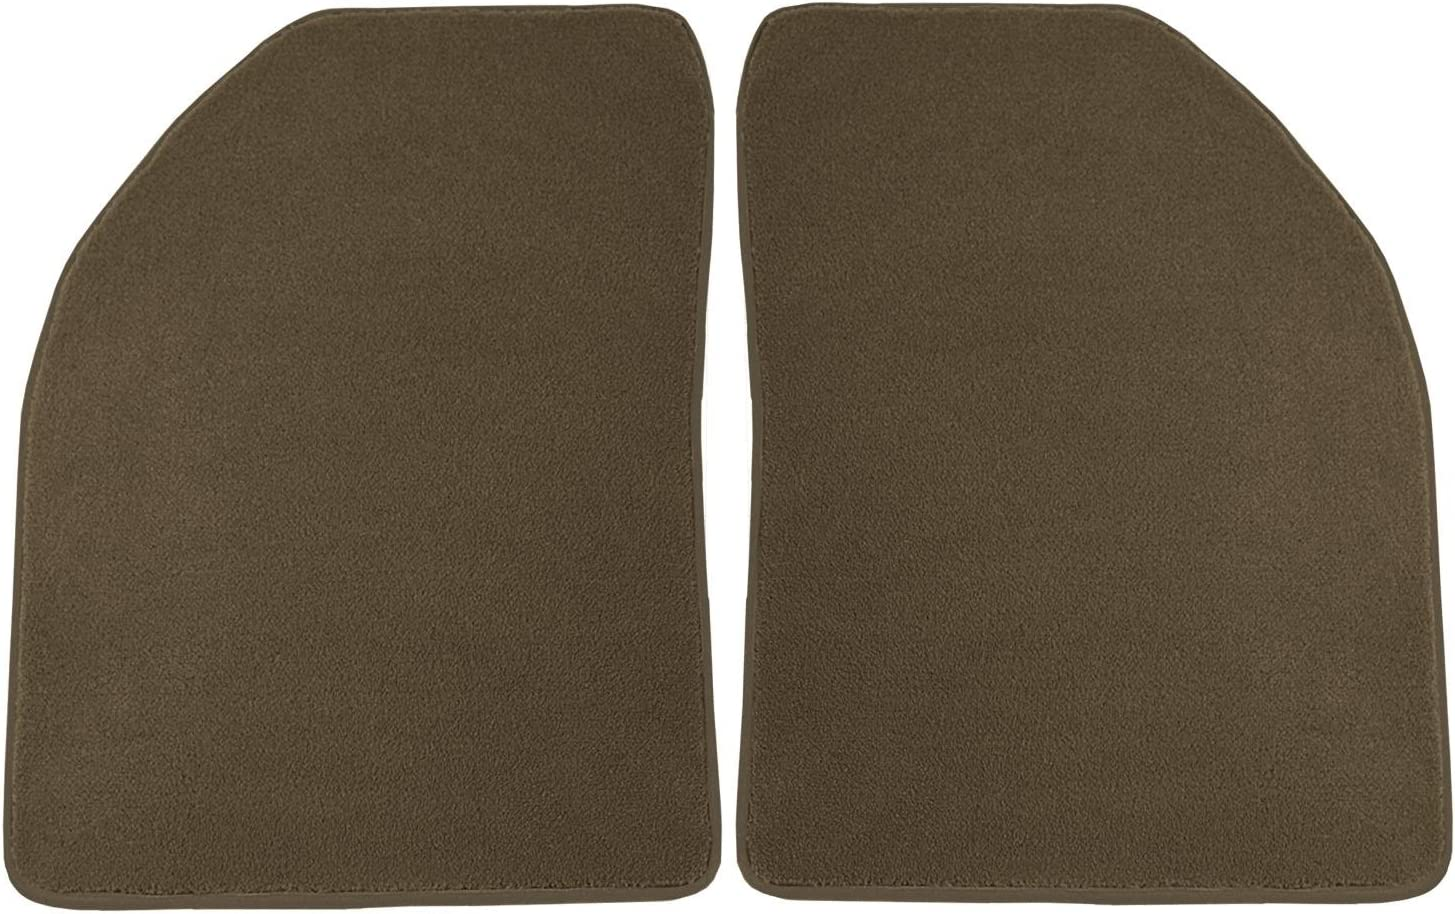 Oak Coverking Front and Rear Floor Mats for Select Dodge Colt Models 70 Oz Carpet